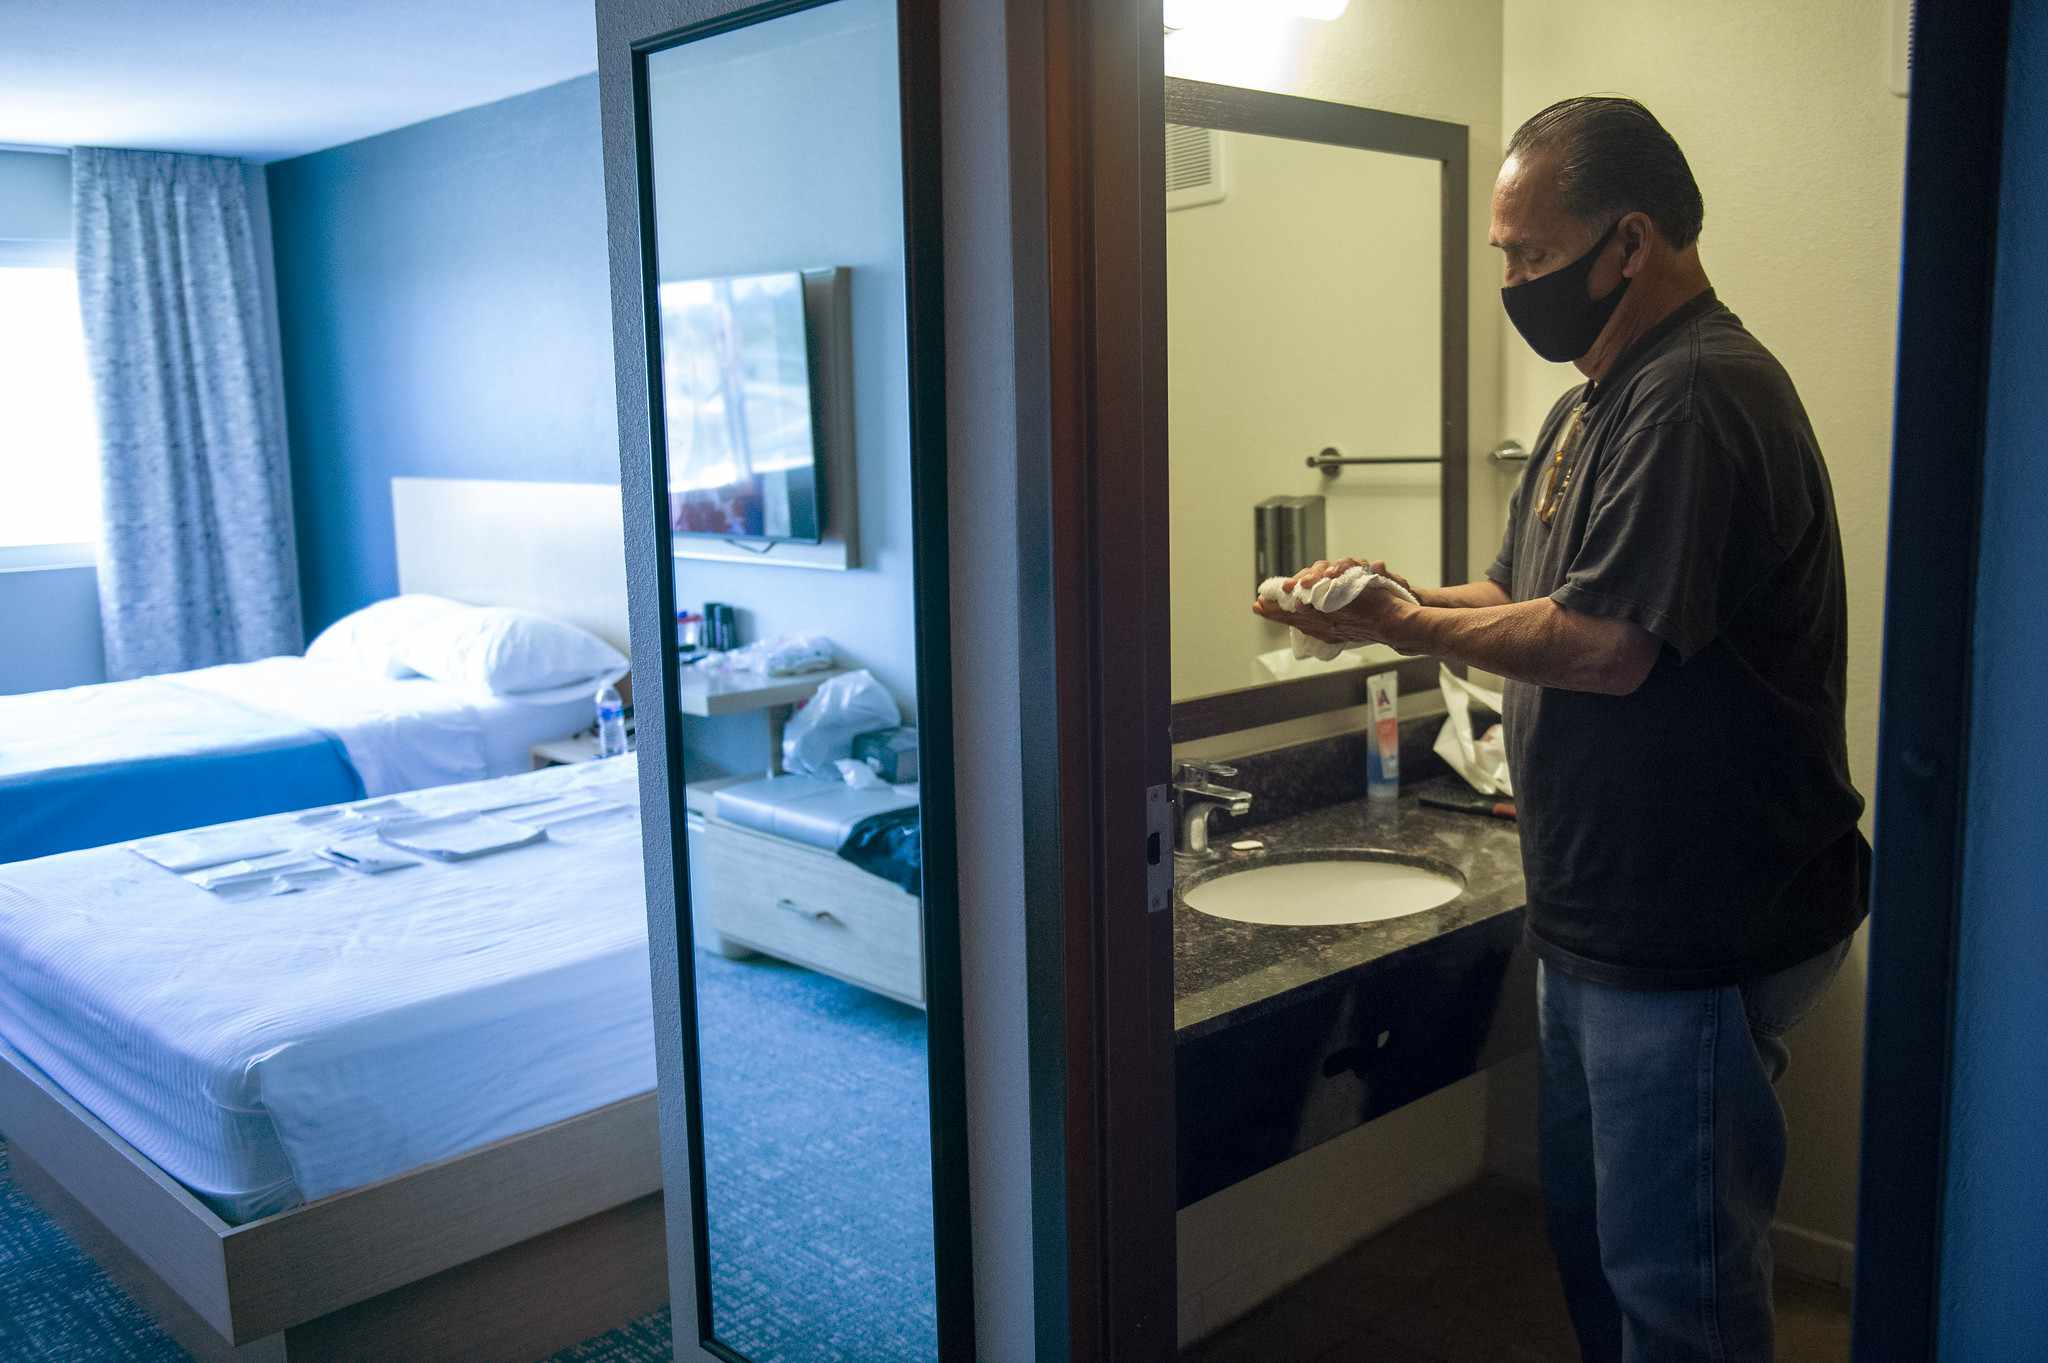 A man washing his hand in a hotel room provided by Project Roomkey